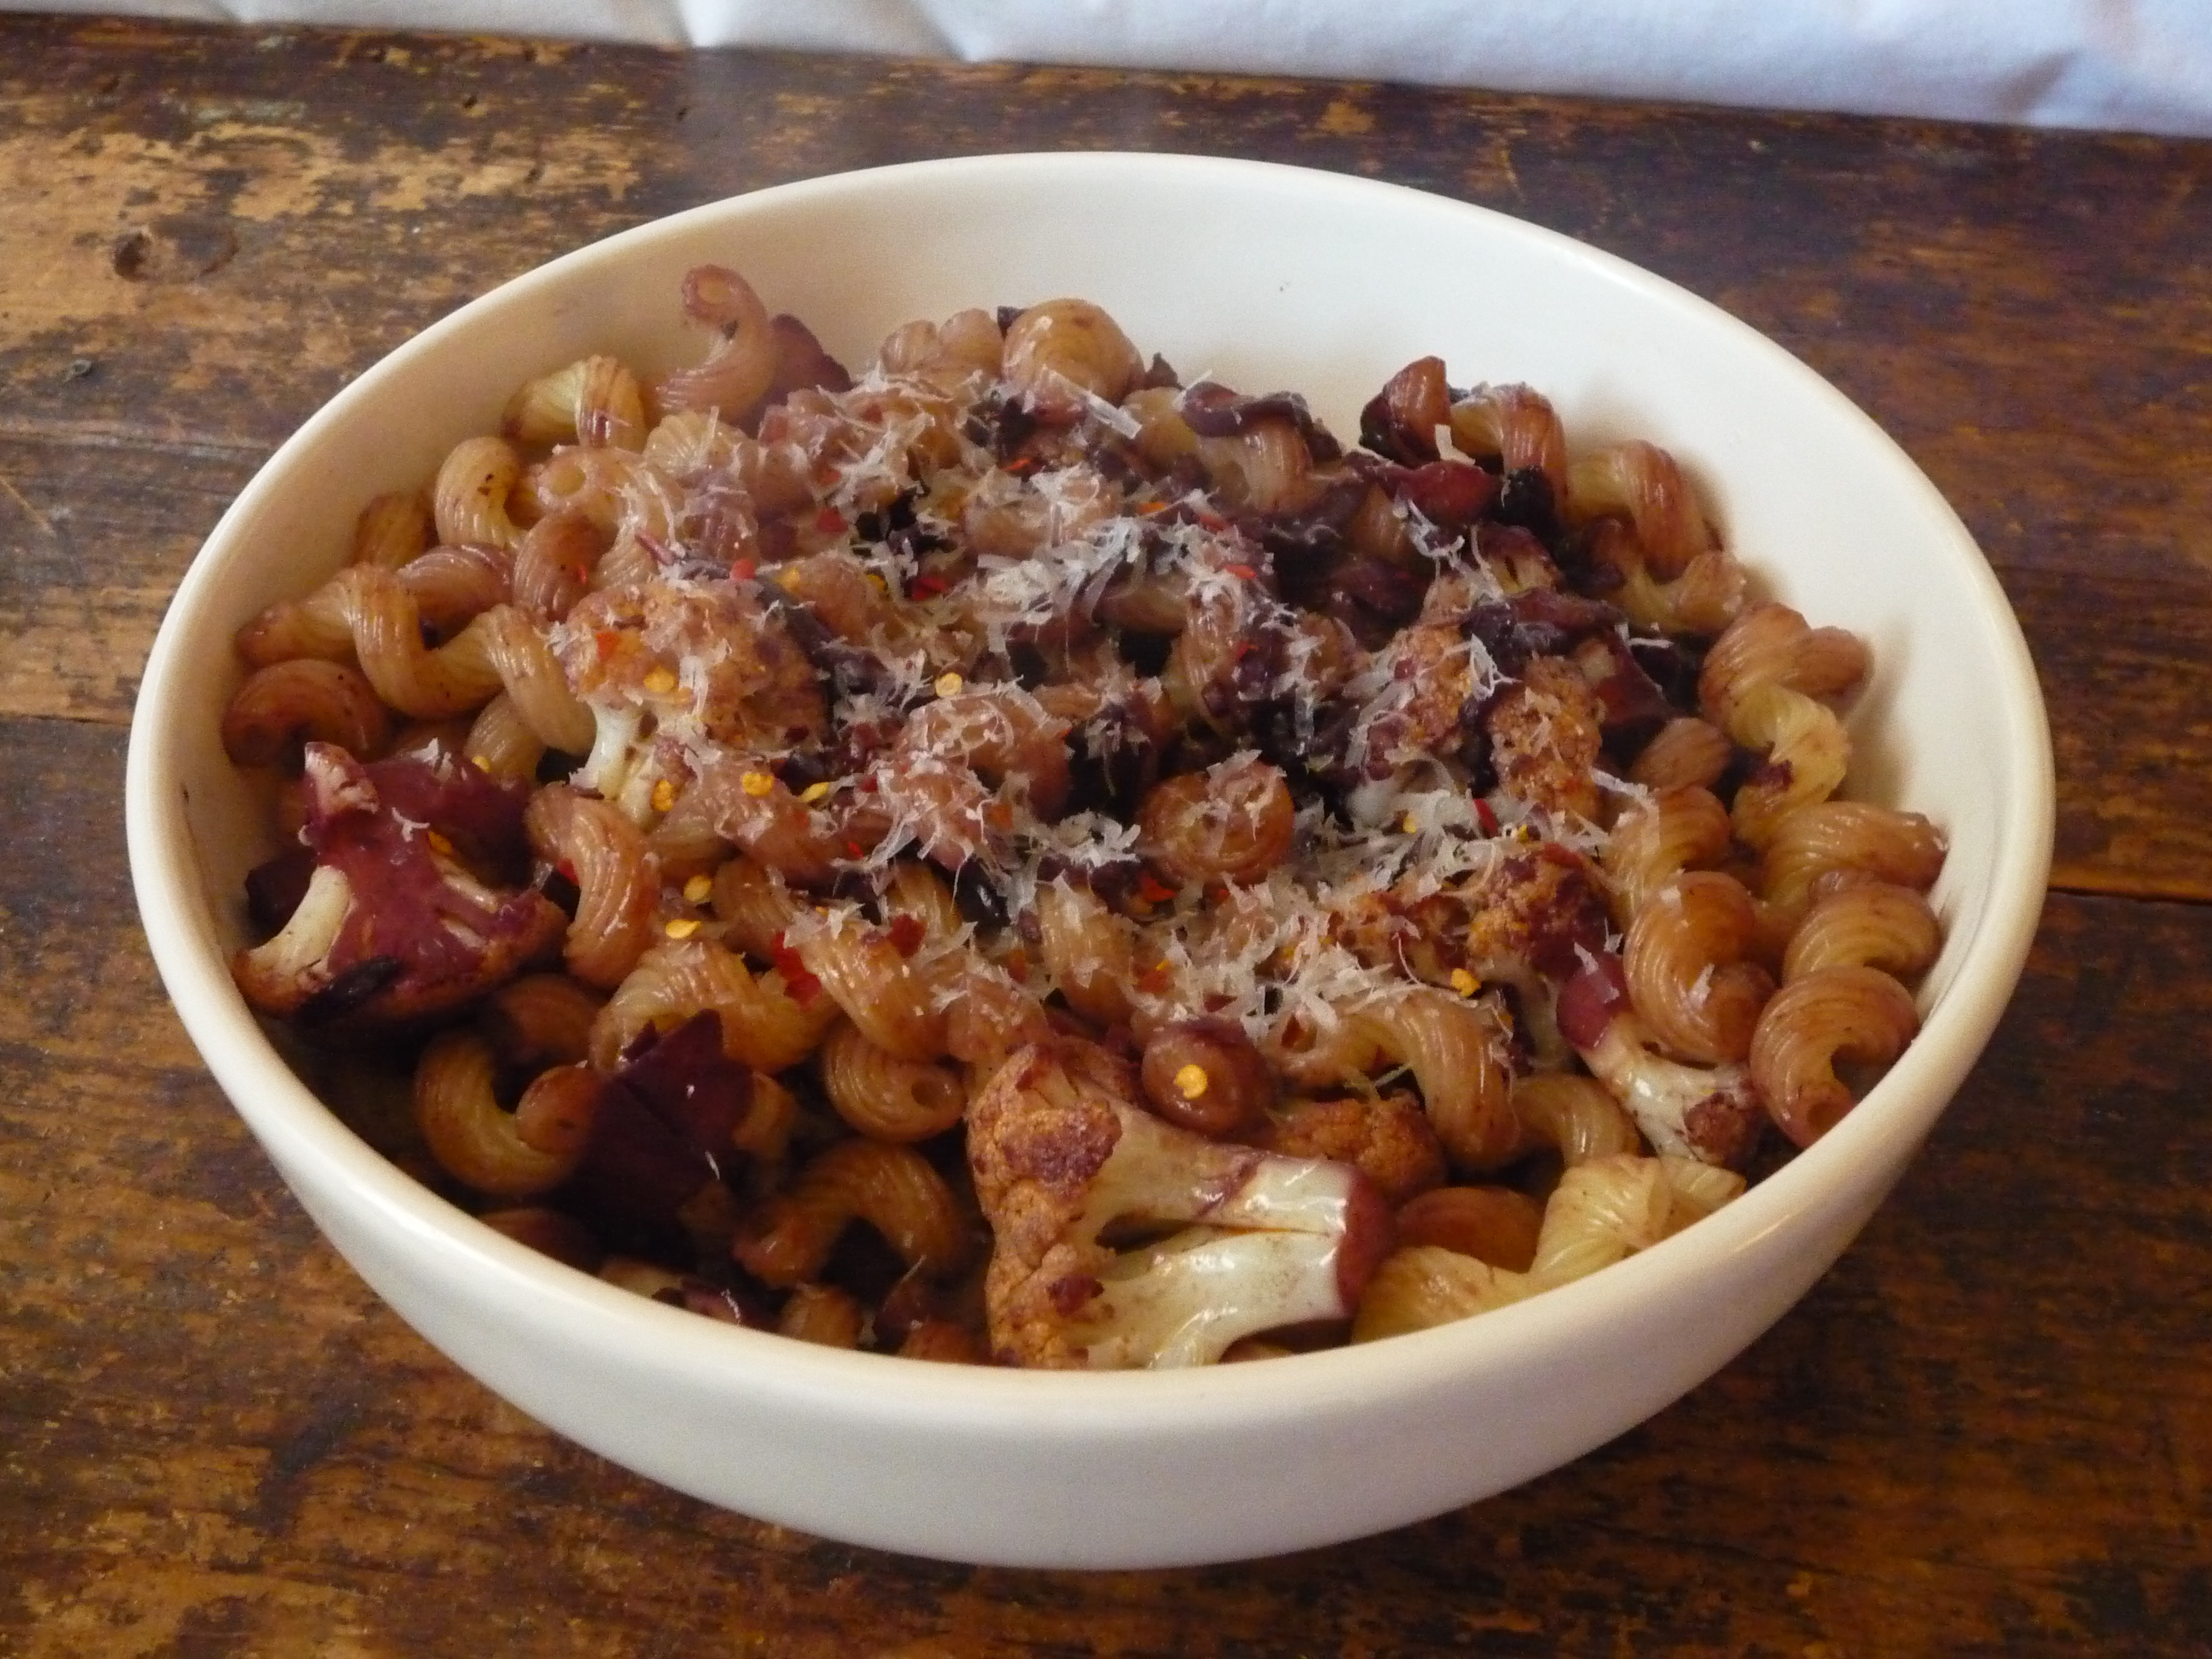 Pasta with Cauliflower and Red Wine